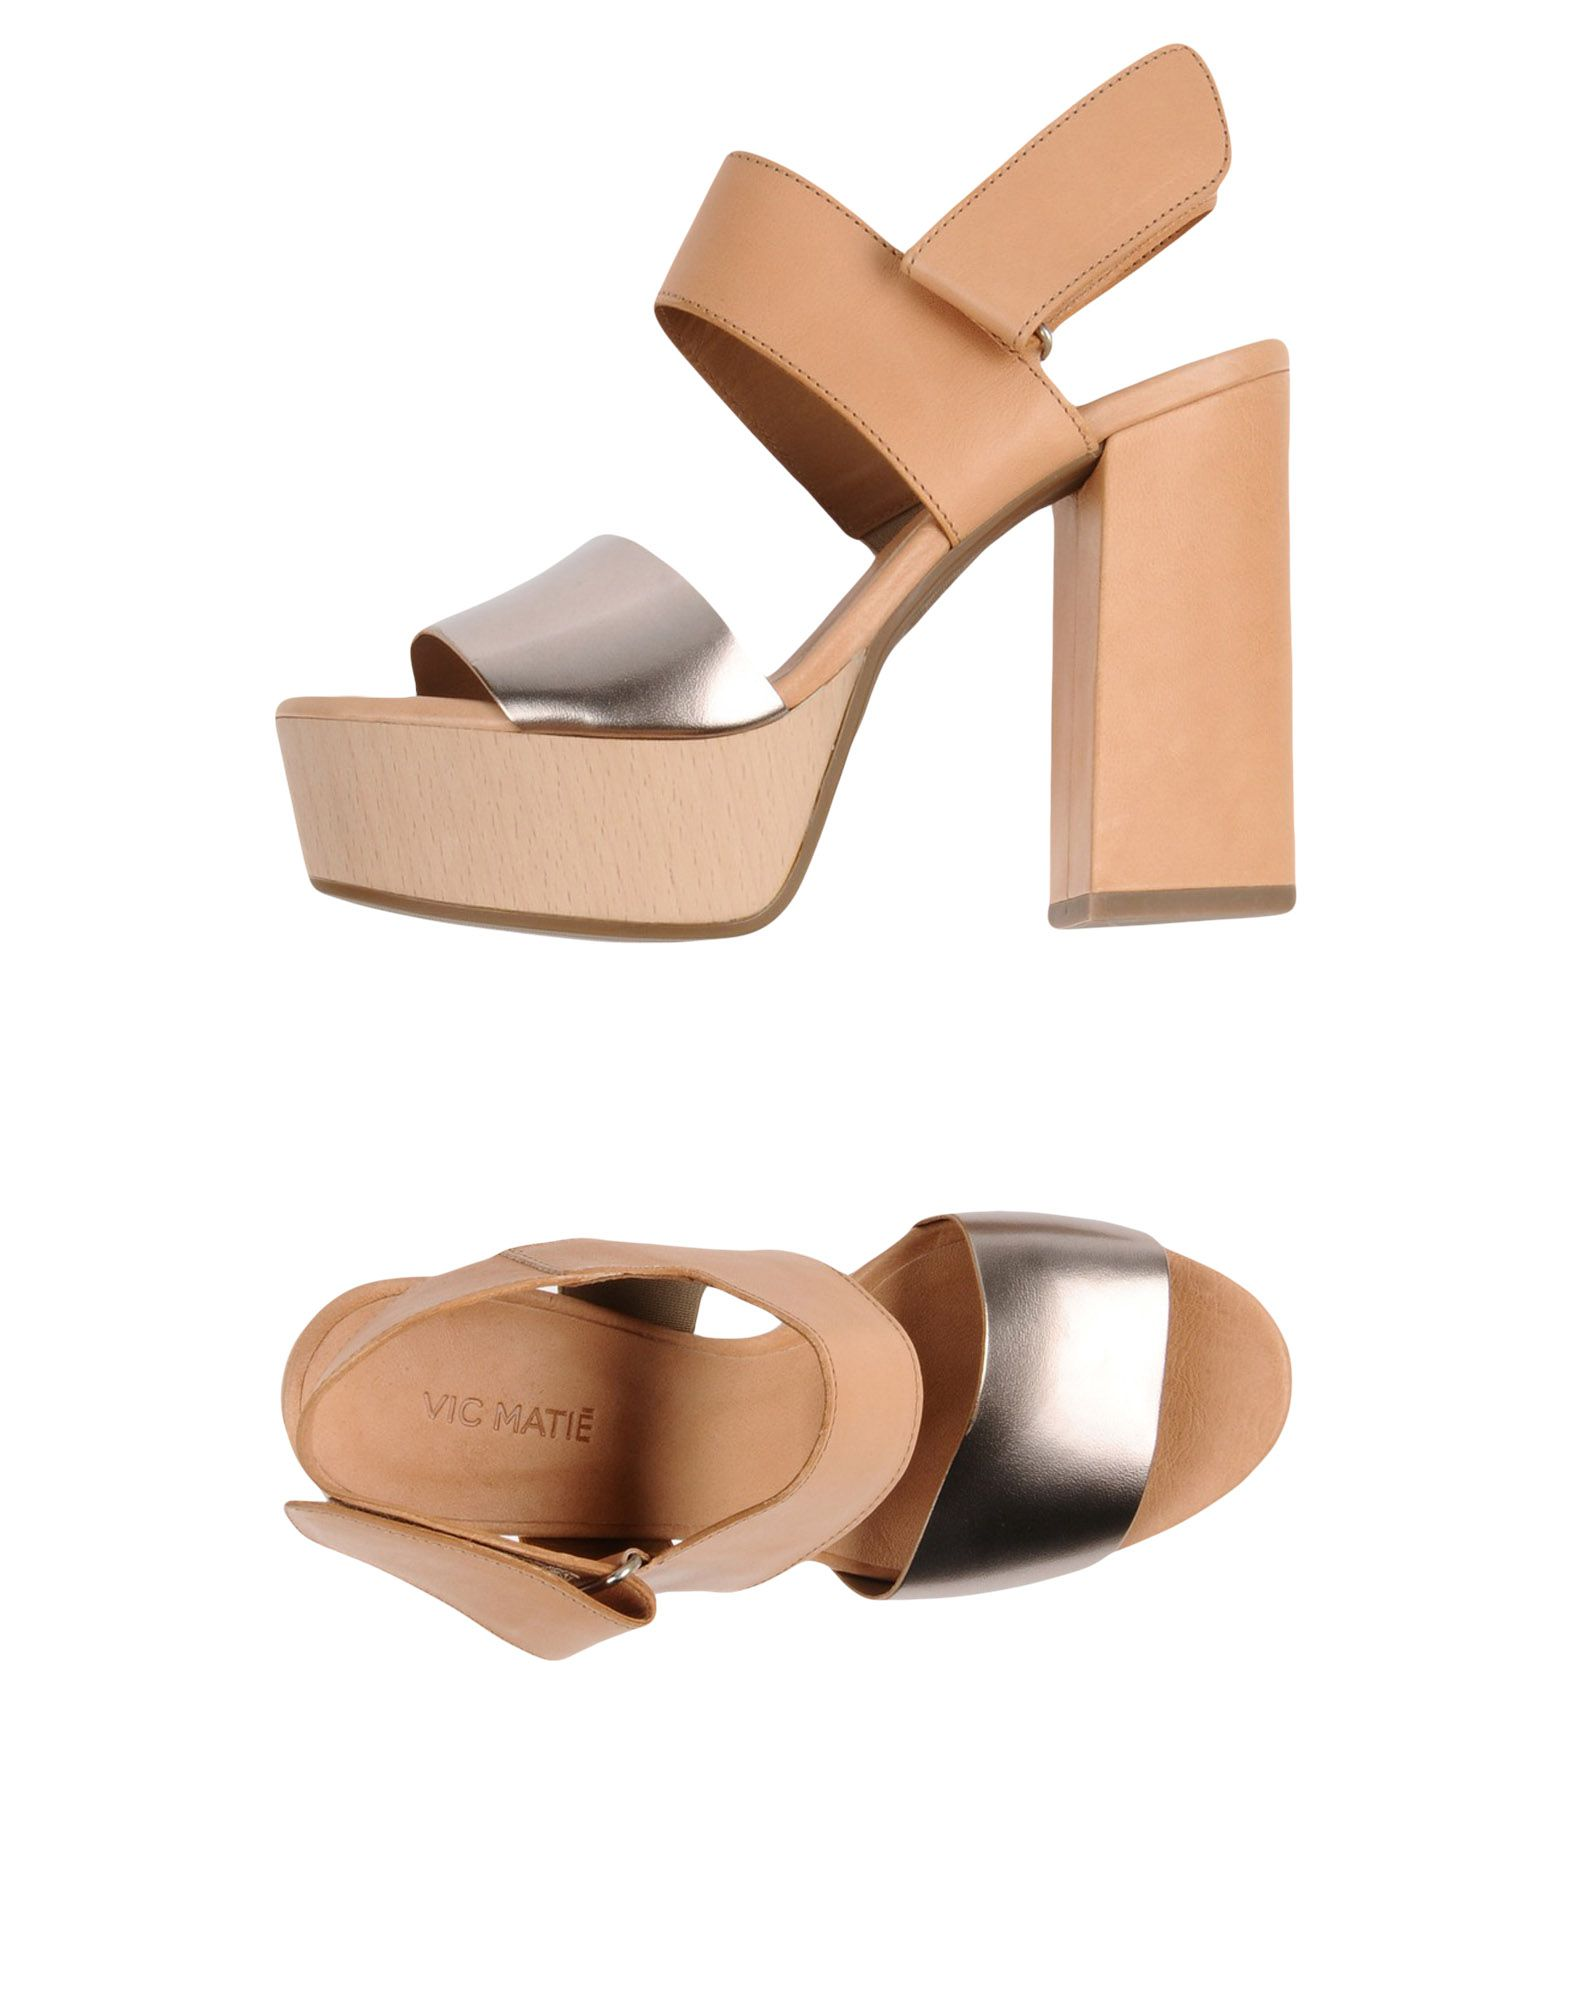 Vic Matiē Sandals - Vic Women Vic - Matiē Sandals online on  Australia - 11423698JX 379392